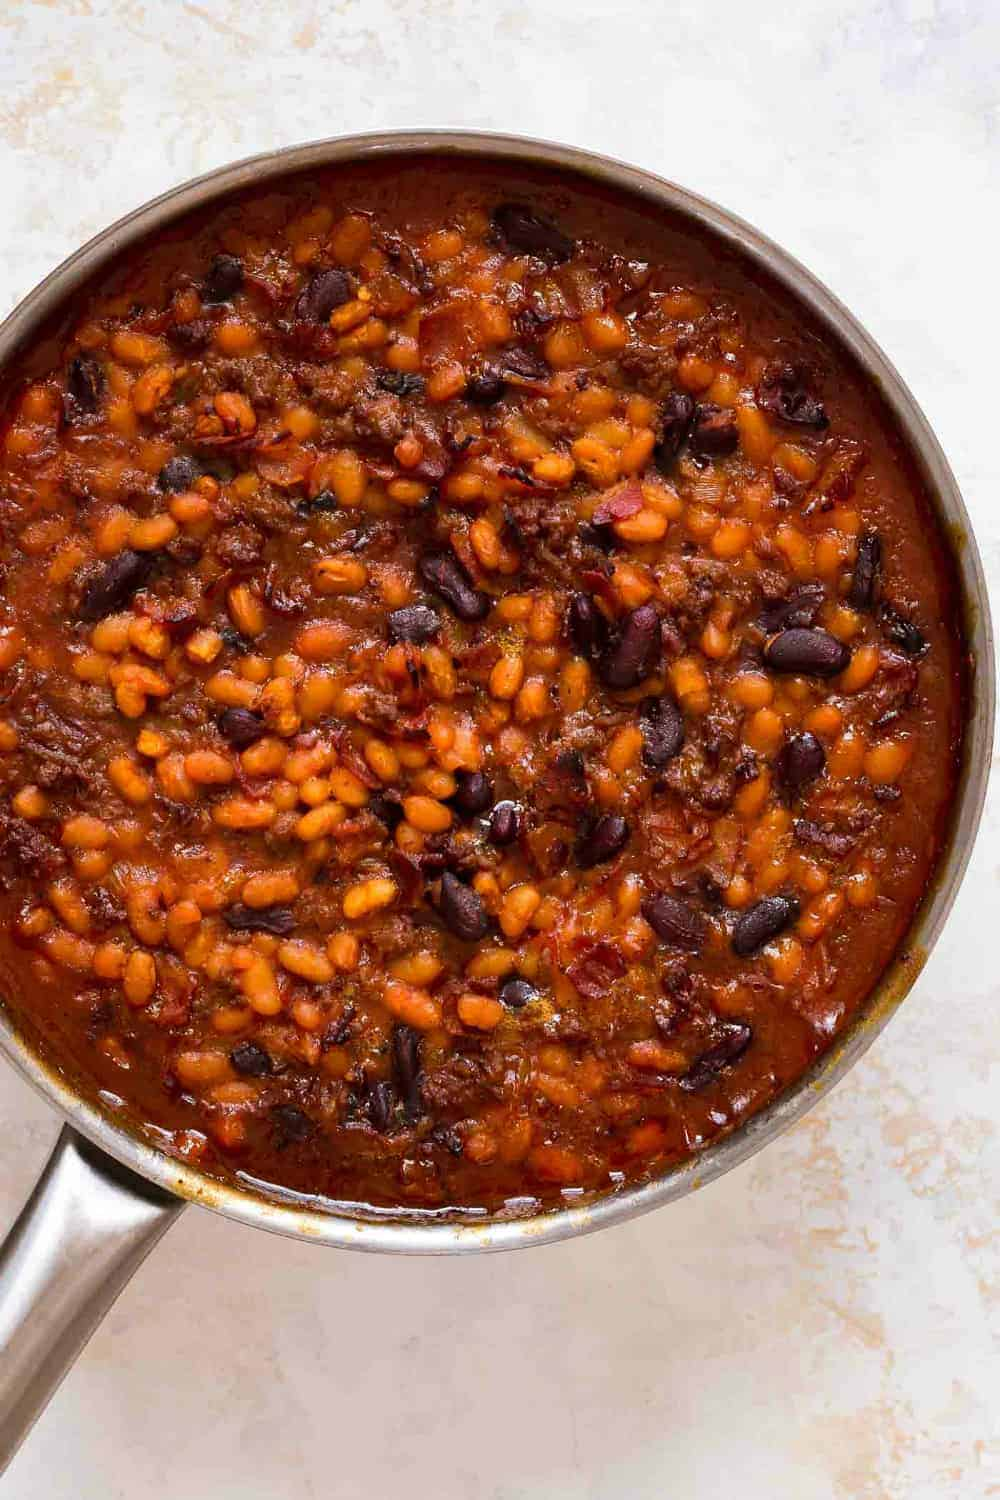 Skillet of old fashioned baked beans fresh from the oven